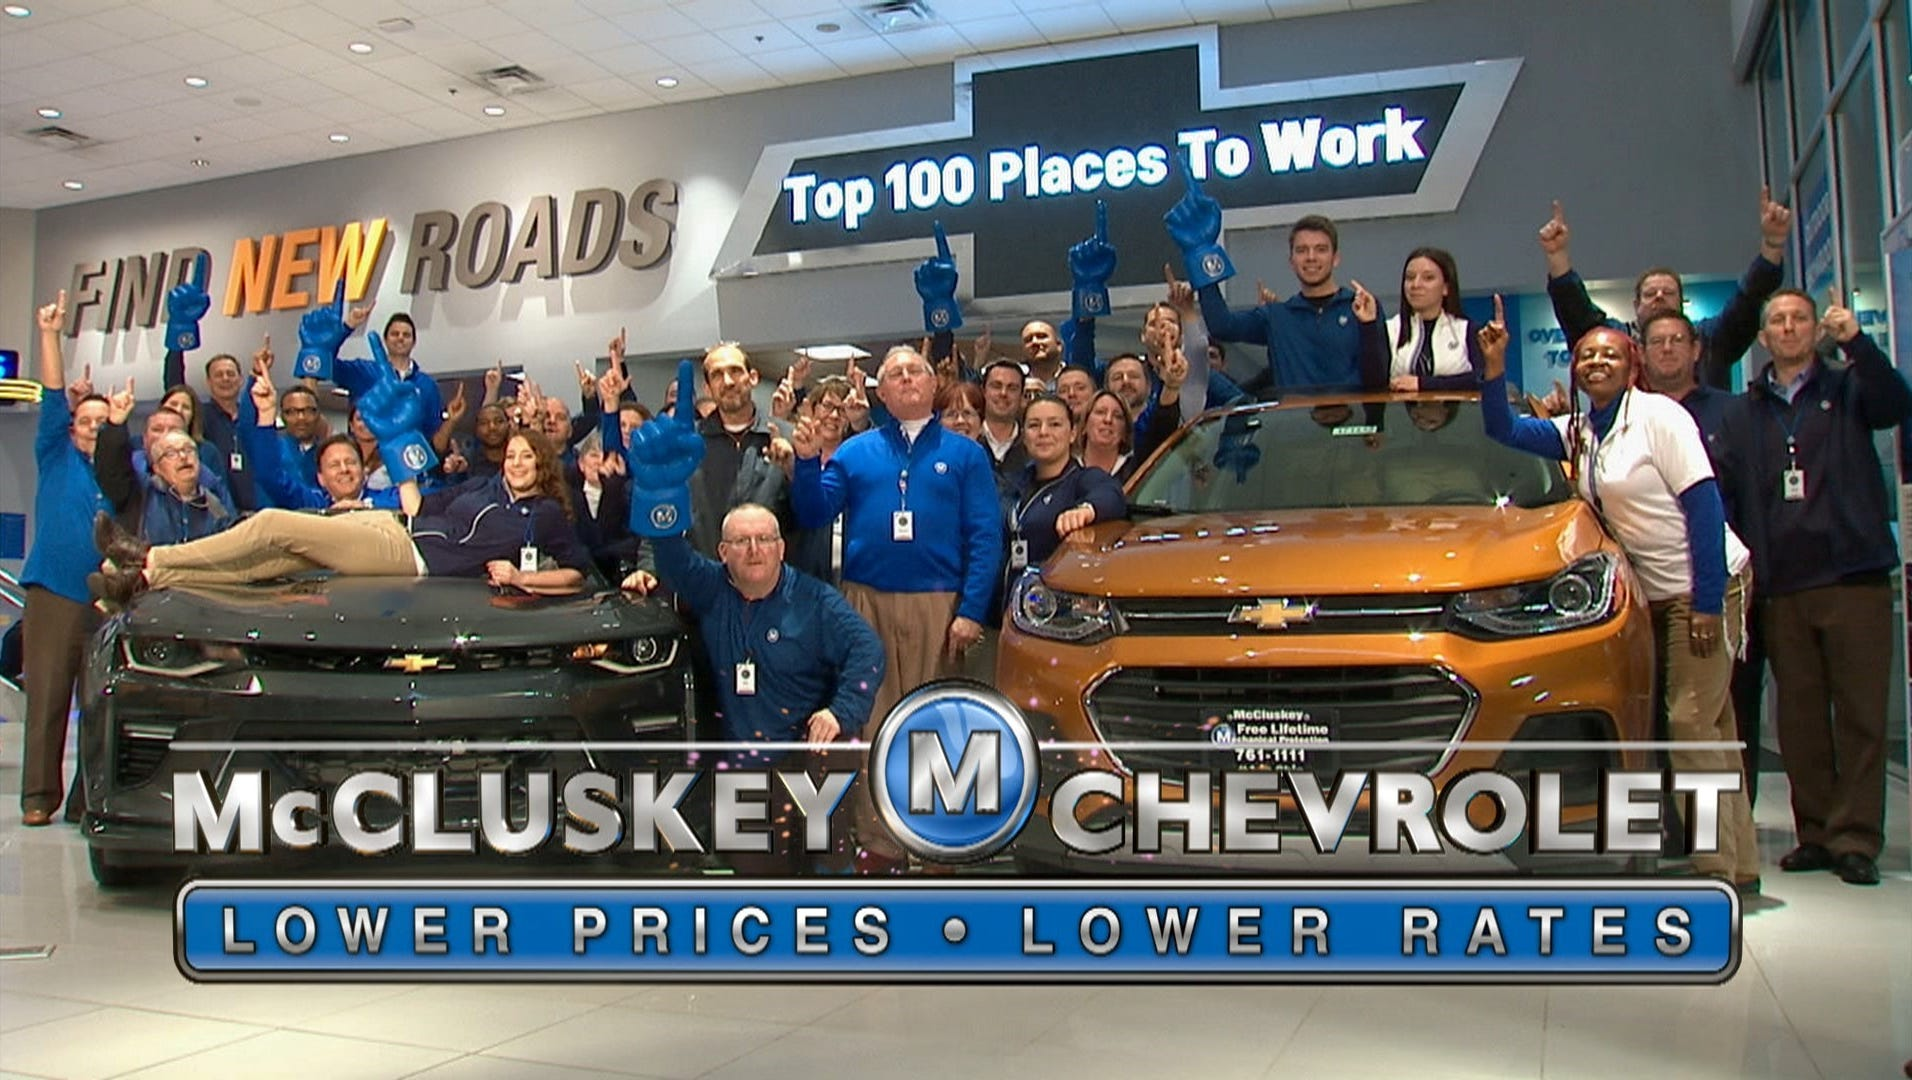 How Mccluskey Chevrolet Recognizes Rewards And Retains Its Employees